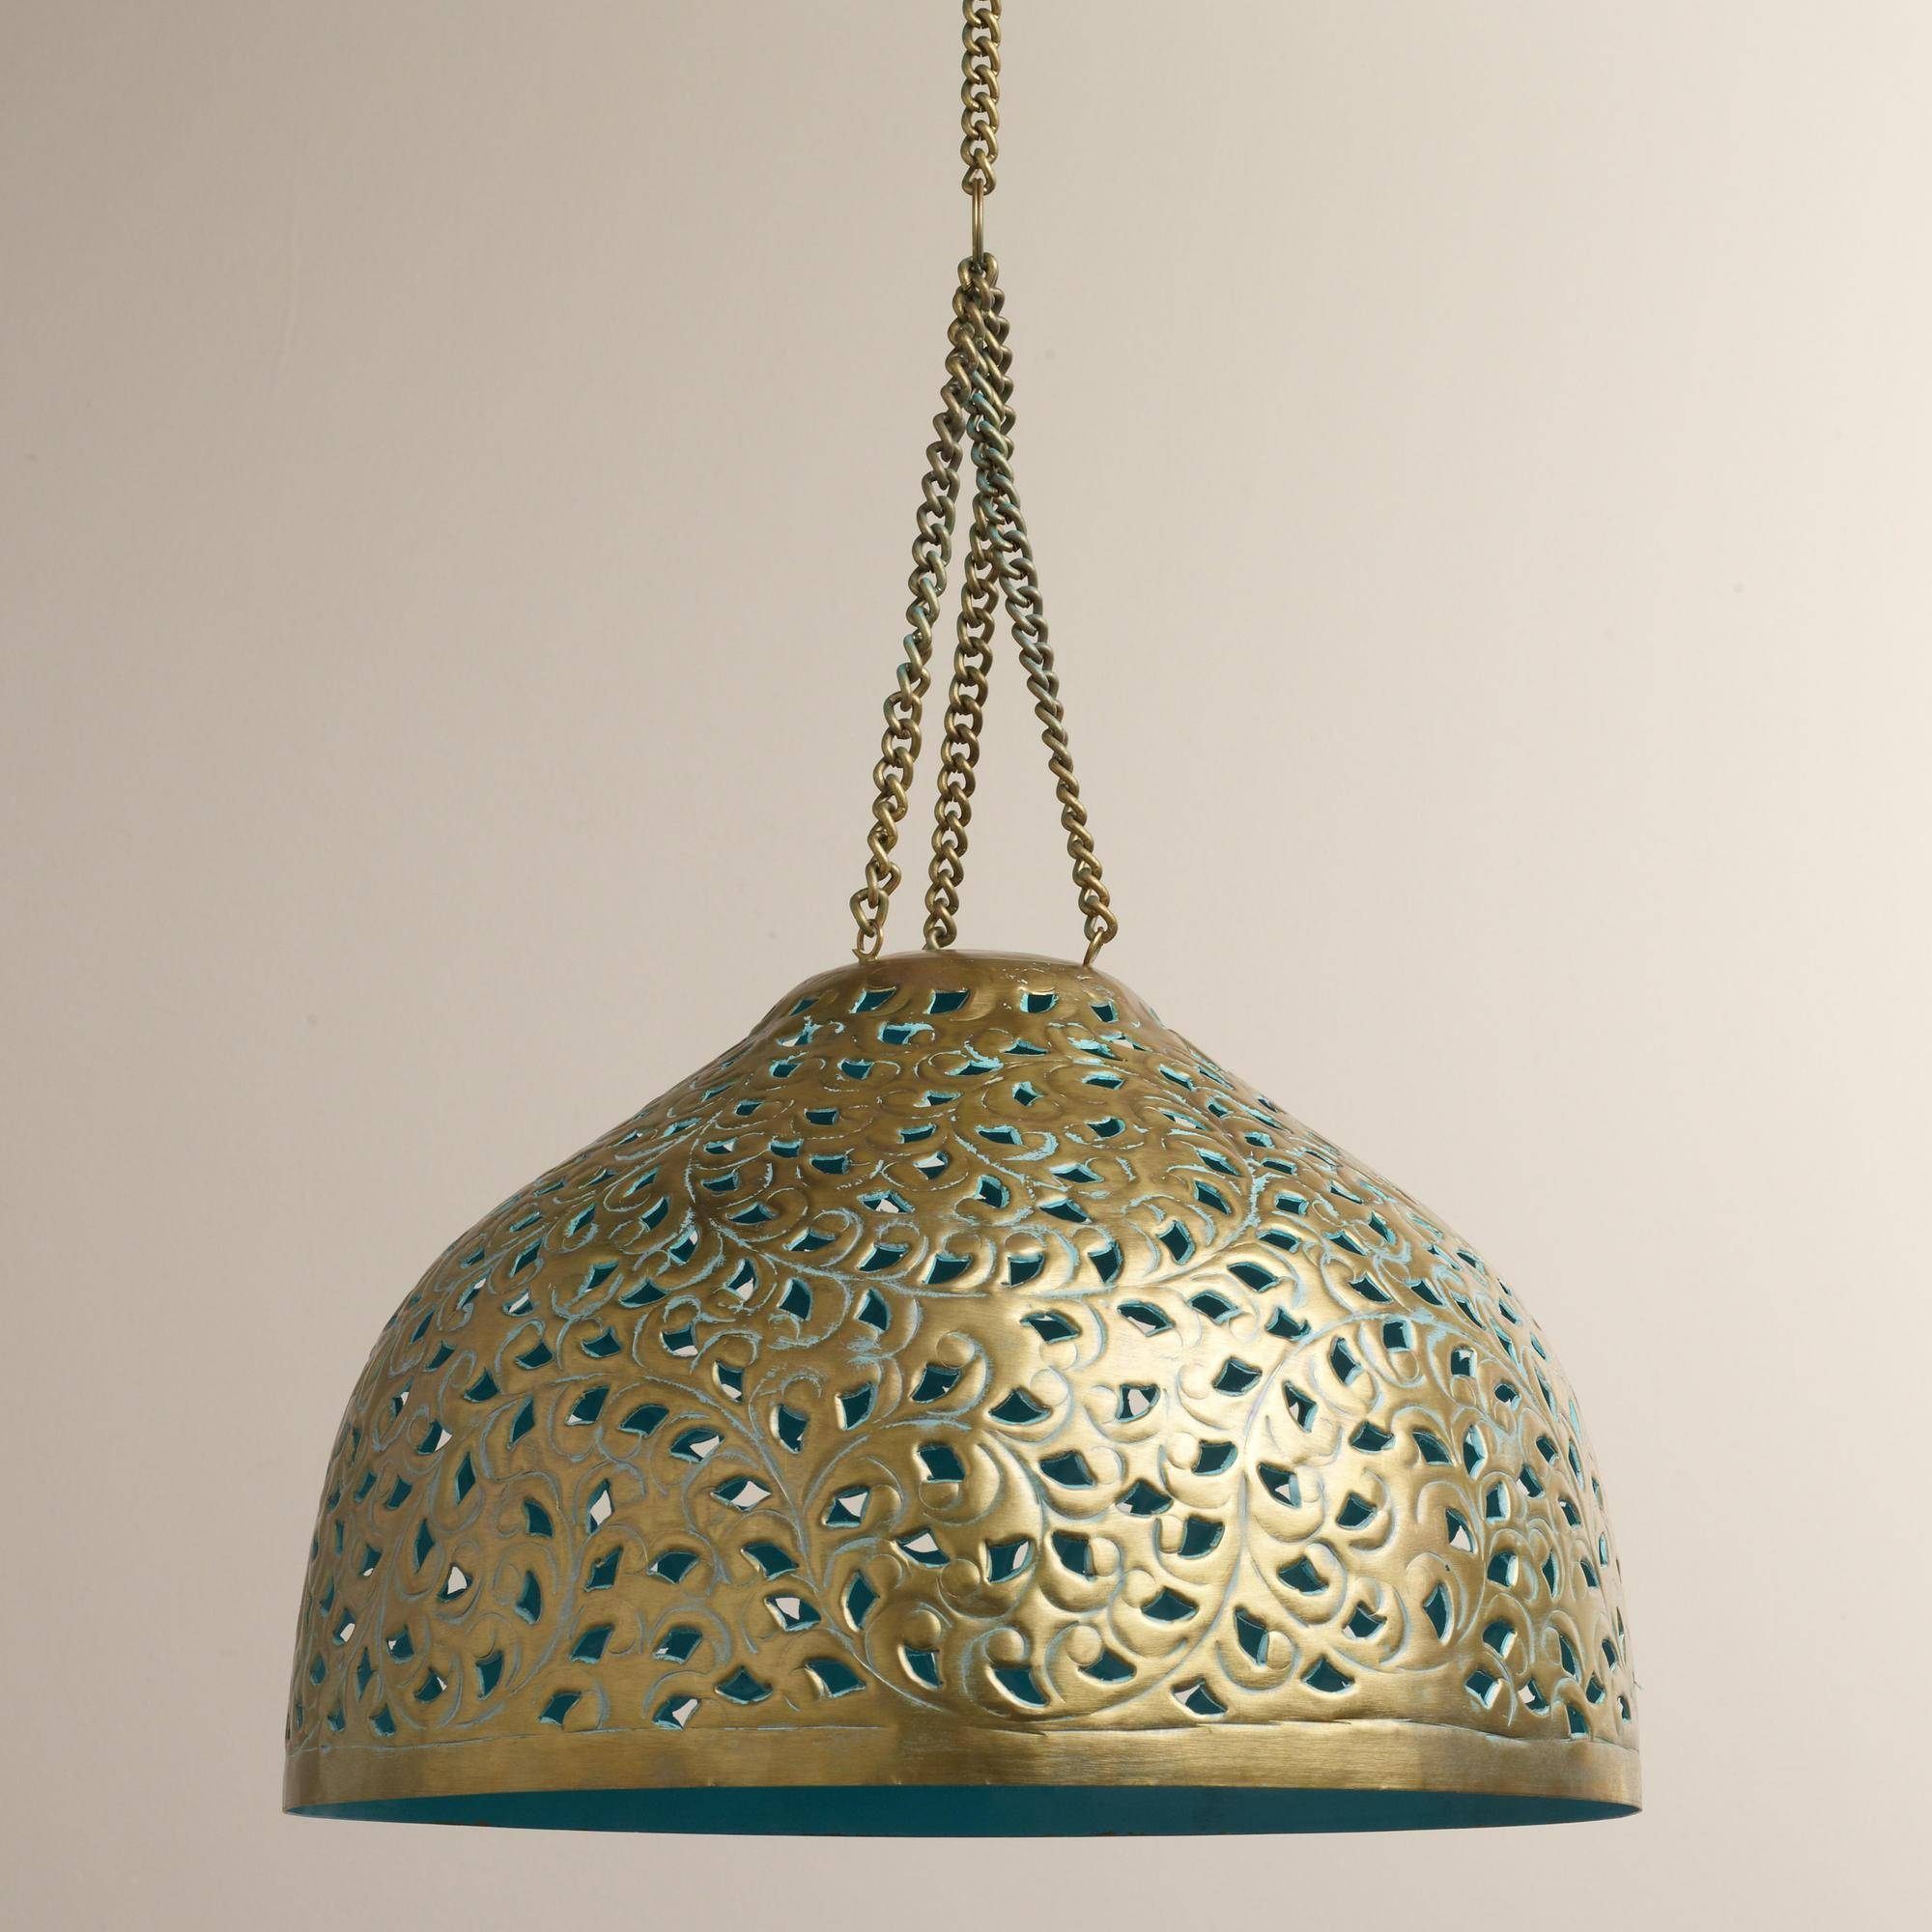 Lamp: Moroccan Pendant Light Fixtures That Will Transform Your pertaining to Moroccan Style Lights Shades (Image 8 of 15)